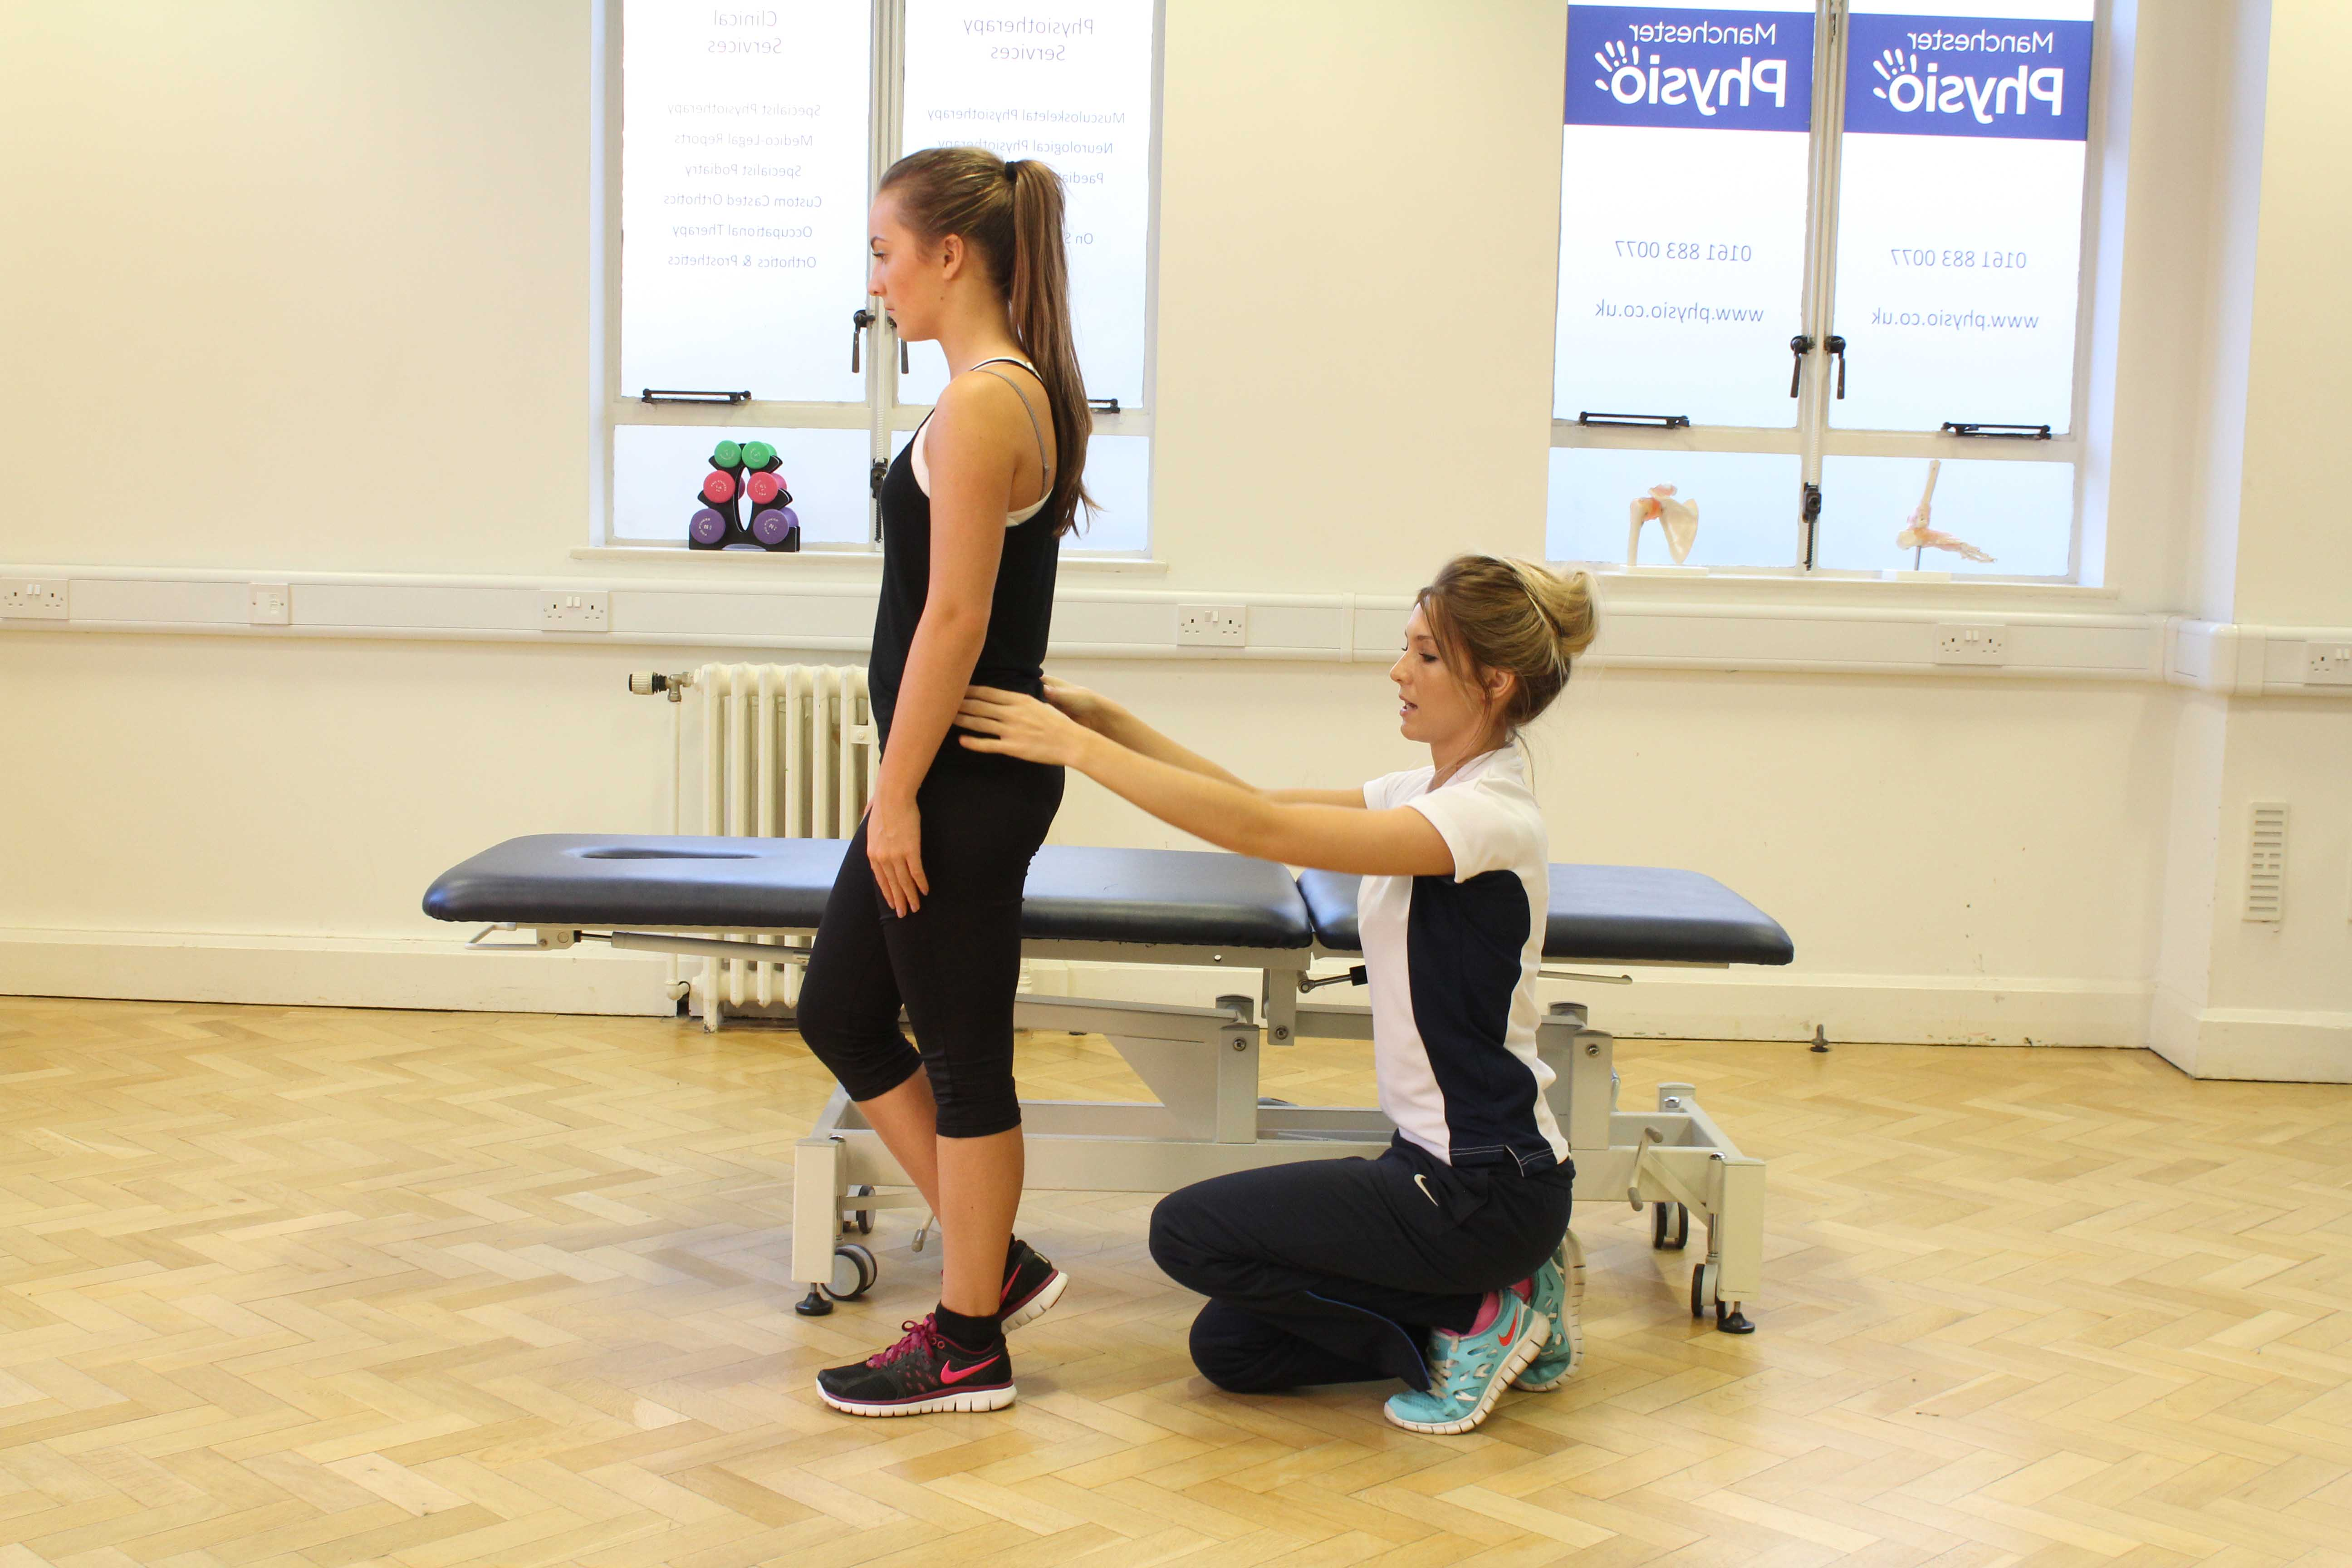 Our therapists can advise you on effective techniques to improve your posture and prevent muscle tightness.